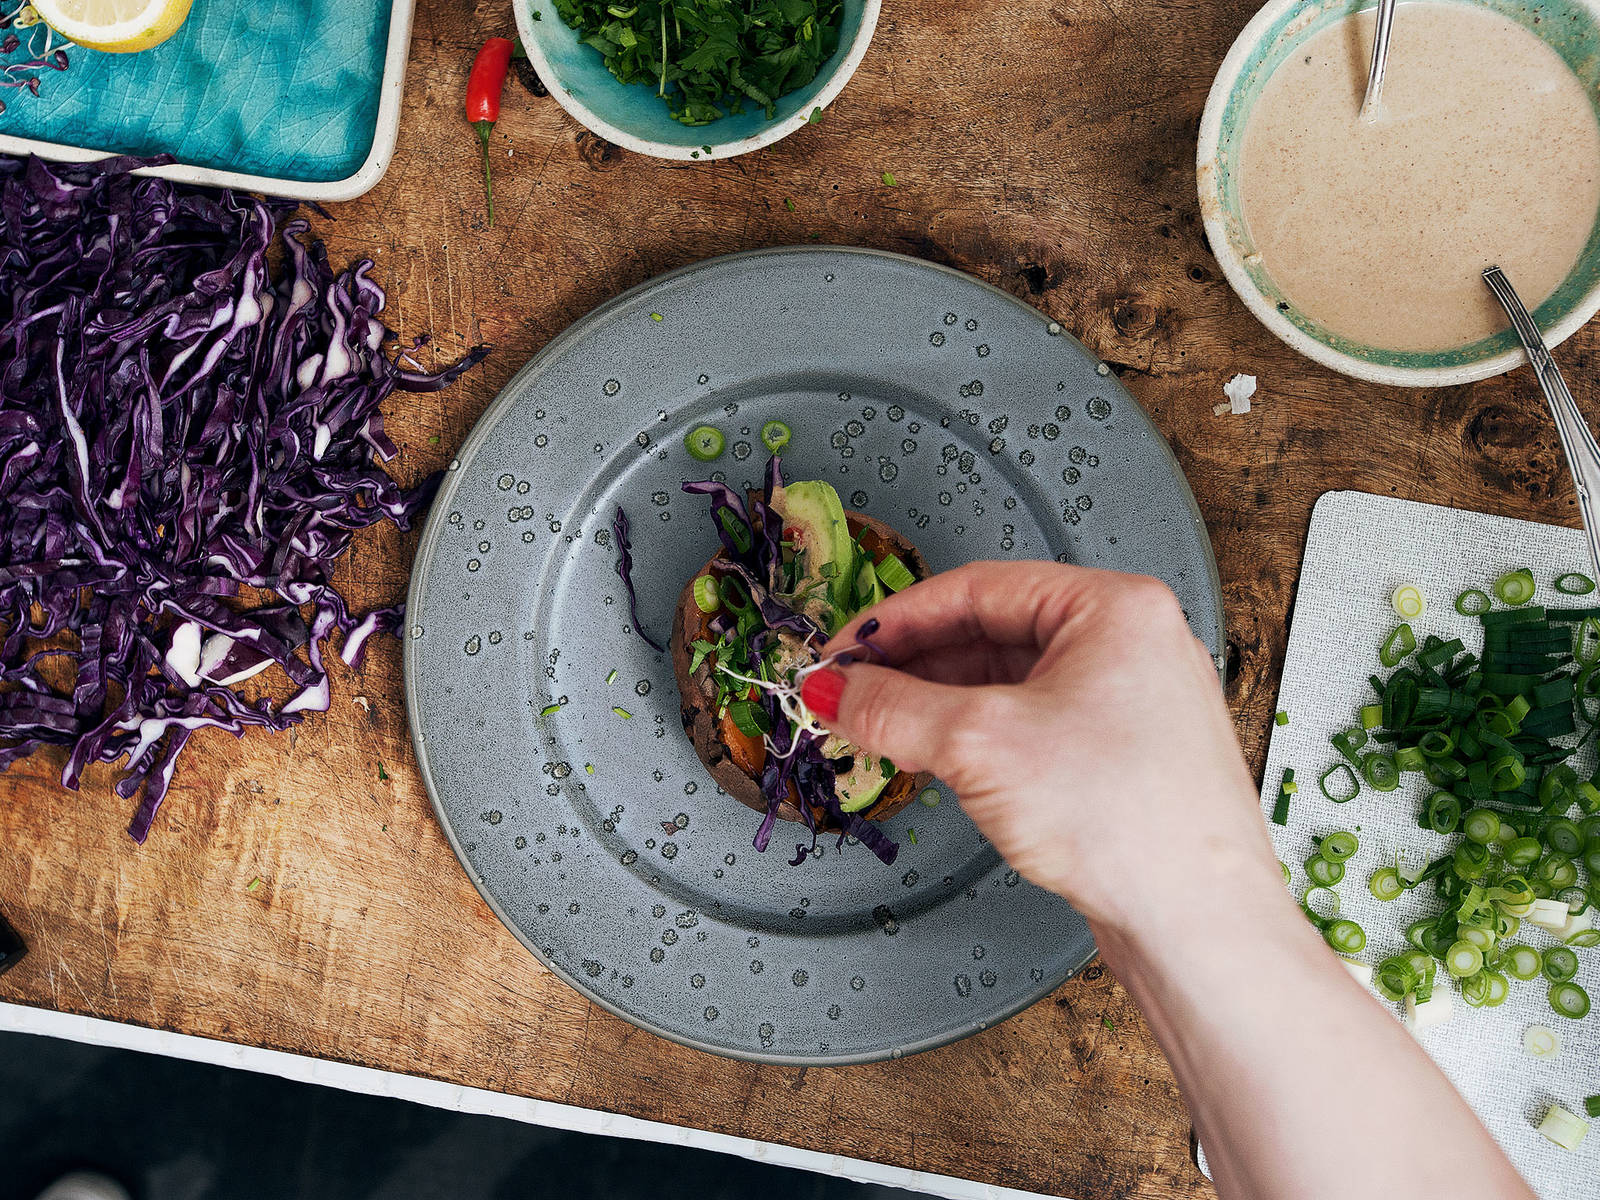 Remove potatoes from oven and top each with red cabbage, green onions, avocado, cilantro, and chili pepper. Drizzle with tahini-citrus sauce and enjoy!